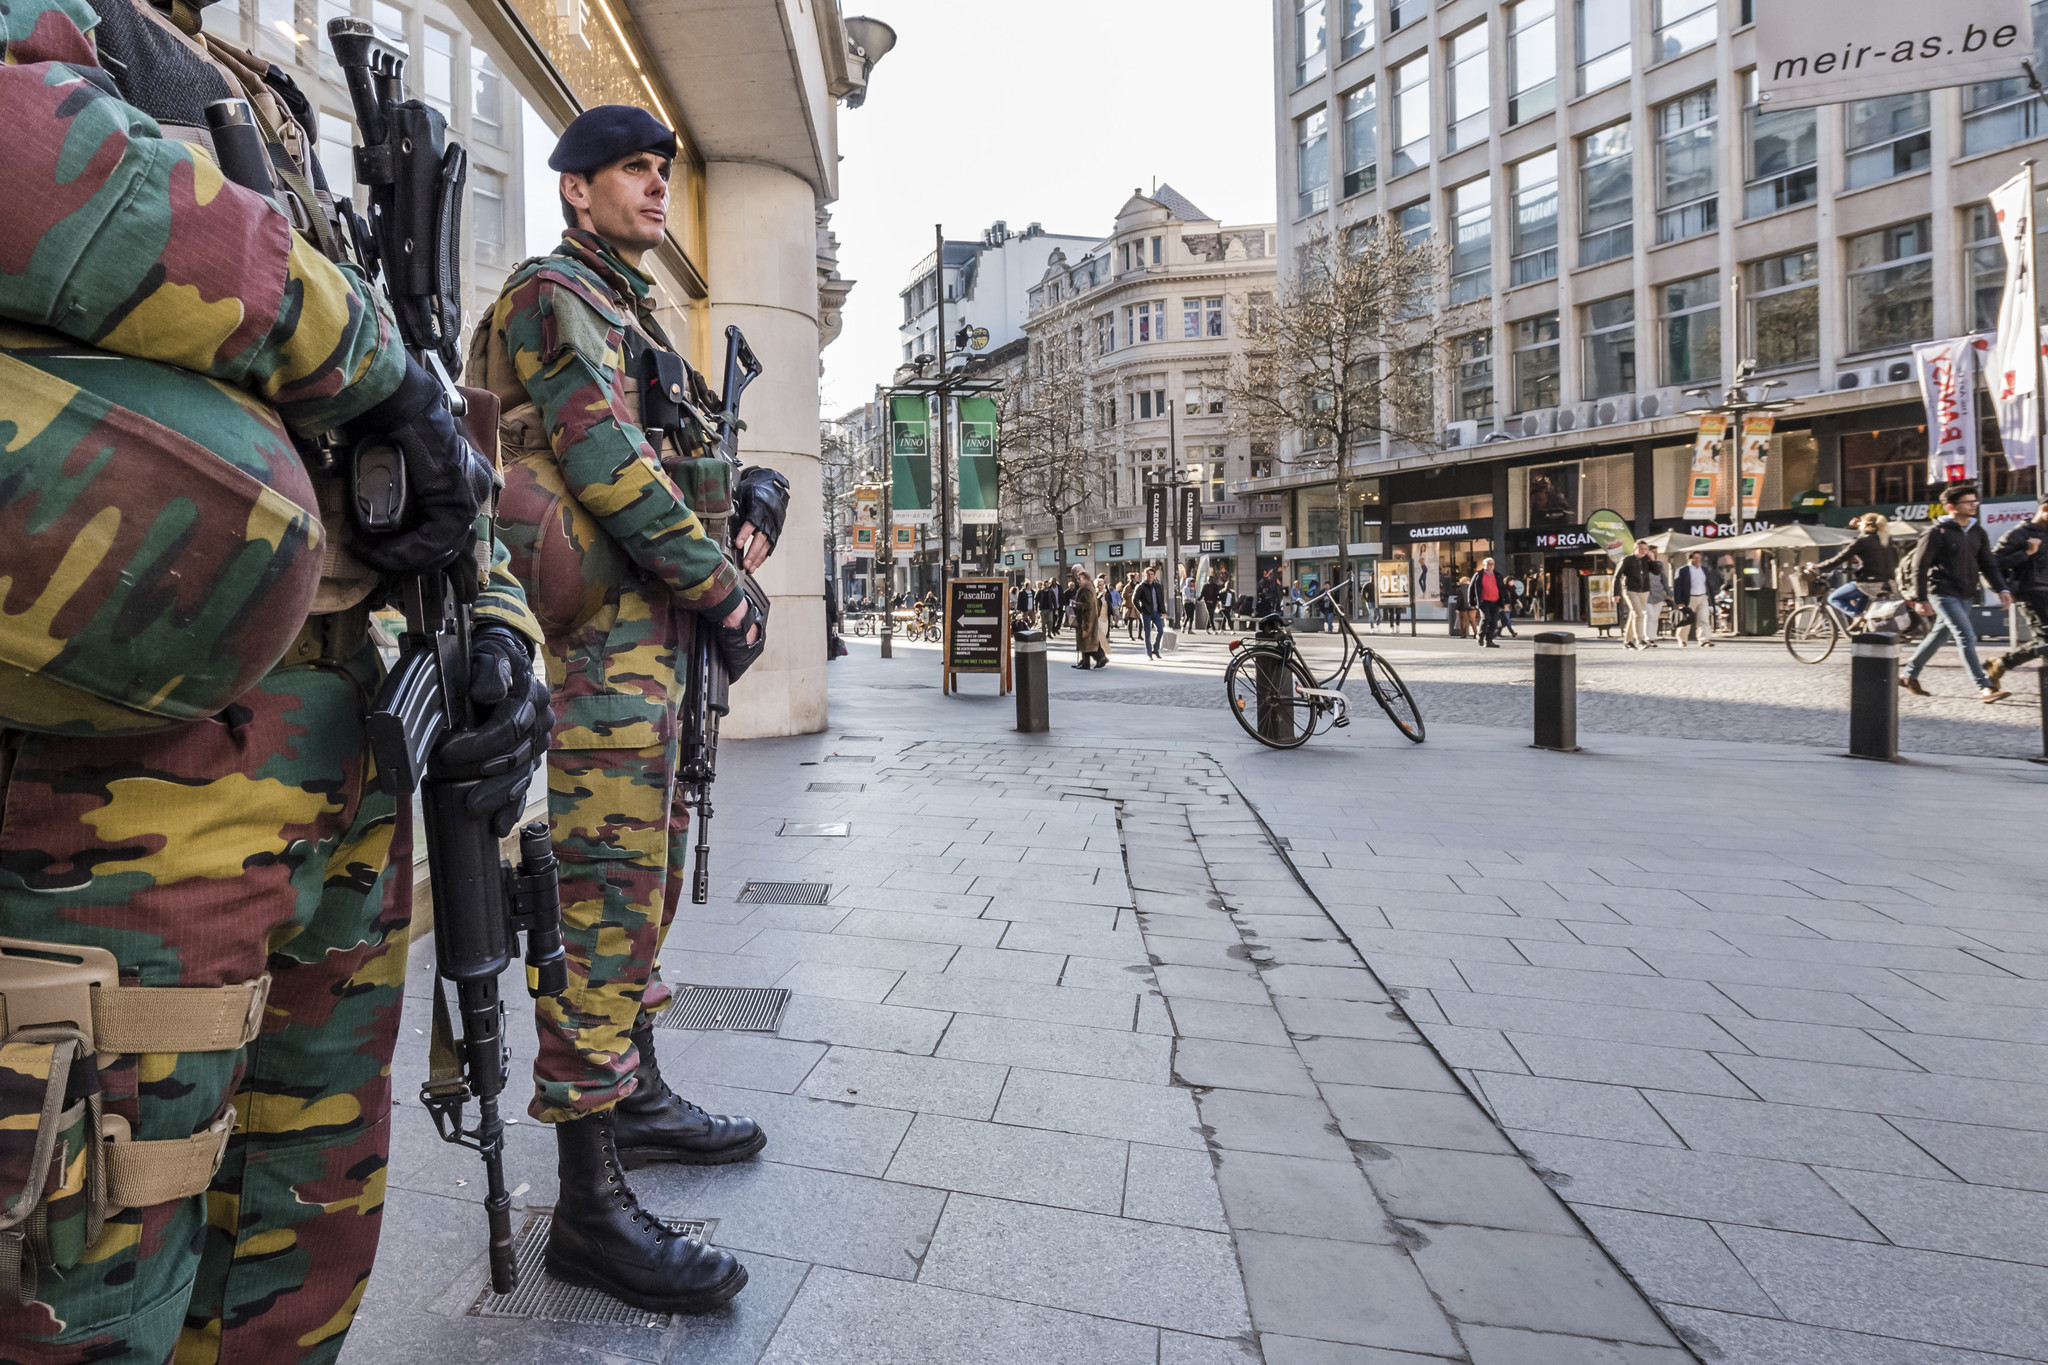 Car Tries To Ram Antwerp Shopping Area Security Tightened